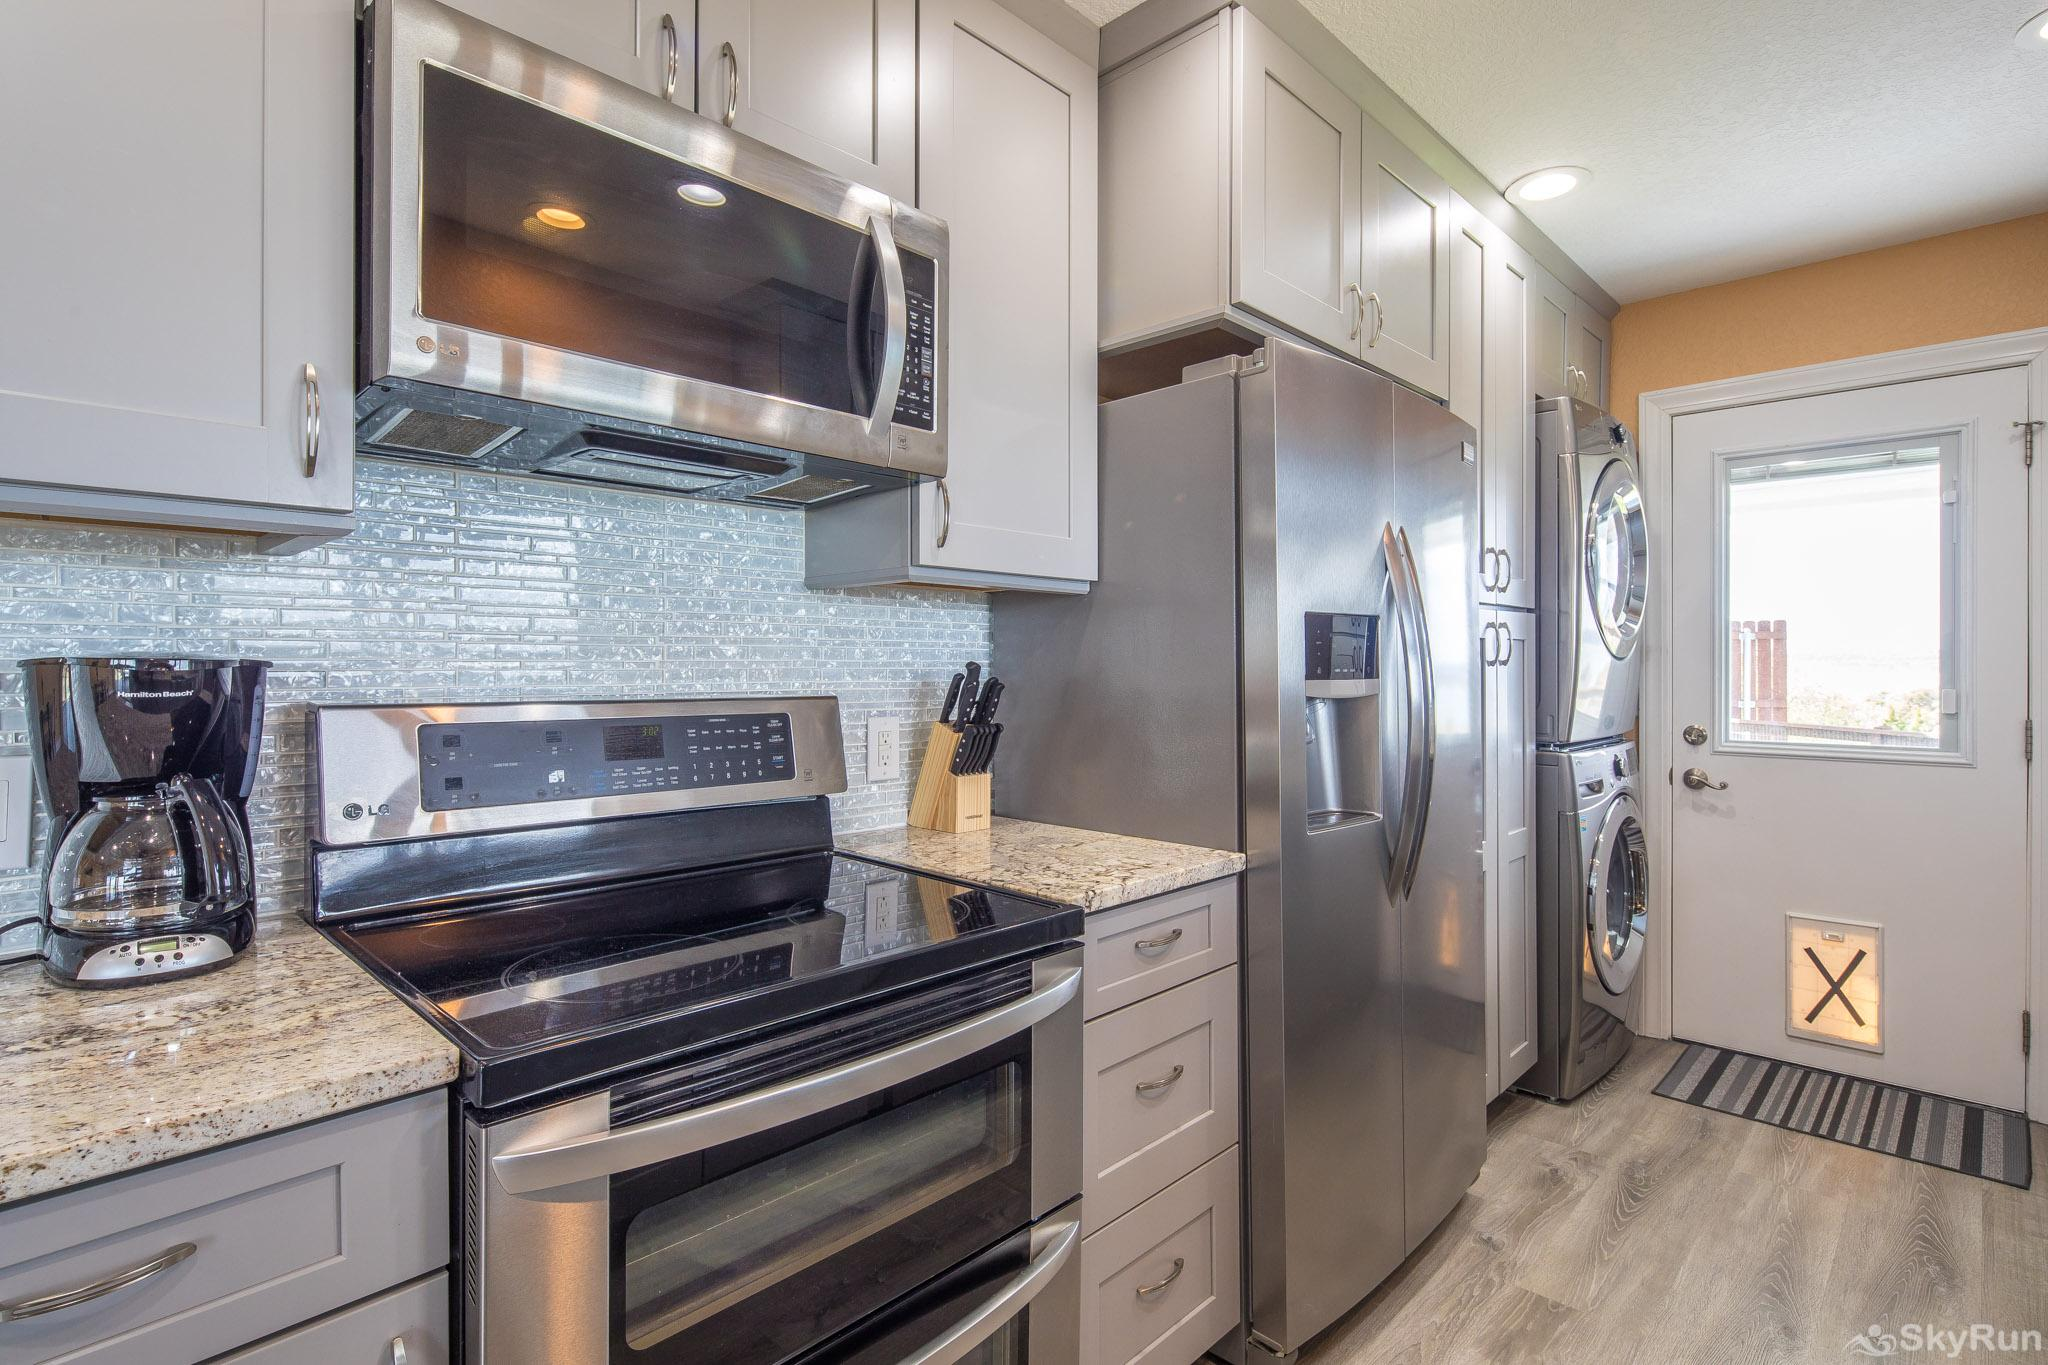 LEDGEROCK POINTE Stainless steel appliances in beautifully updated kitchen